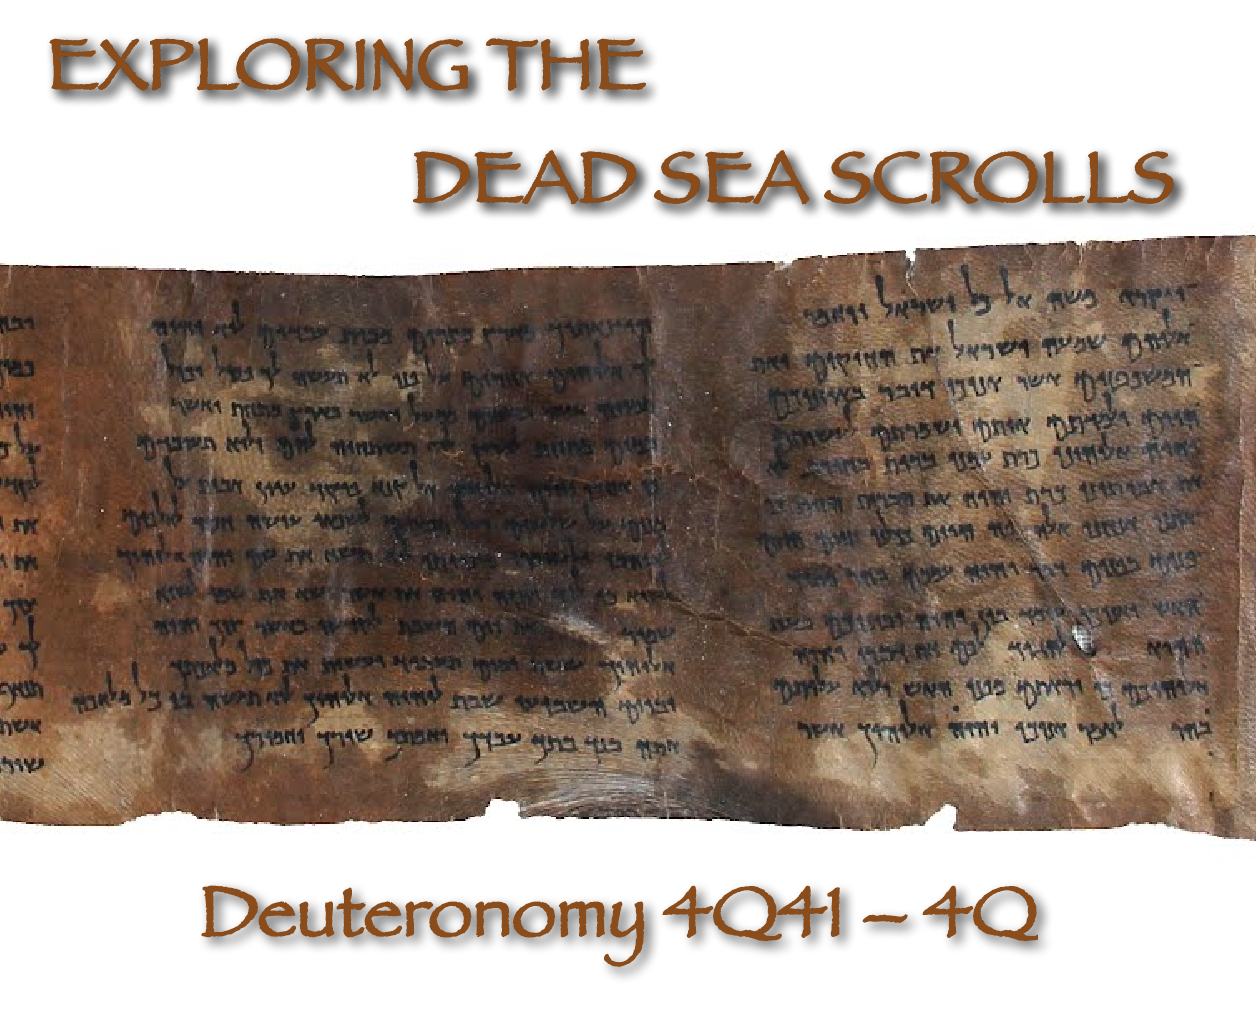 DEUTERONOMY 4Q41-4Q HEADER SECTION